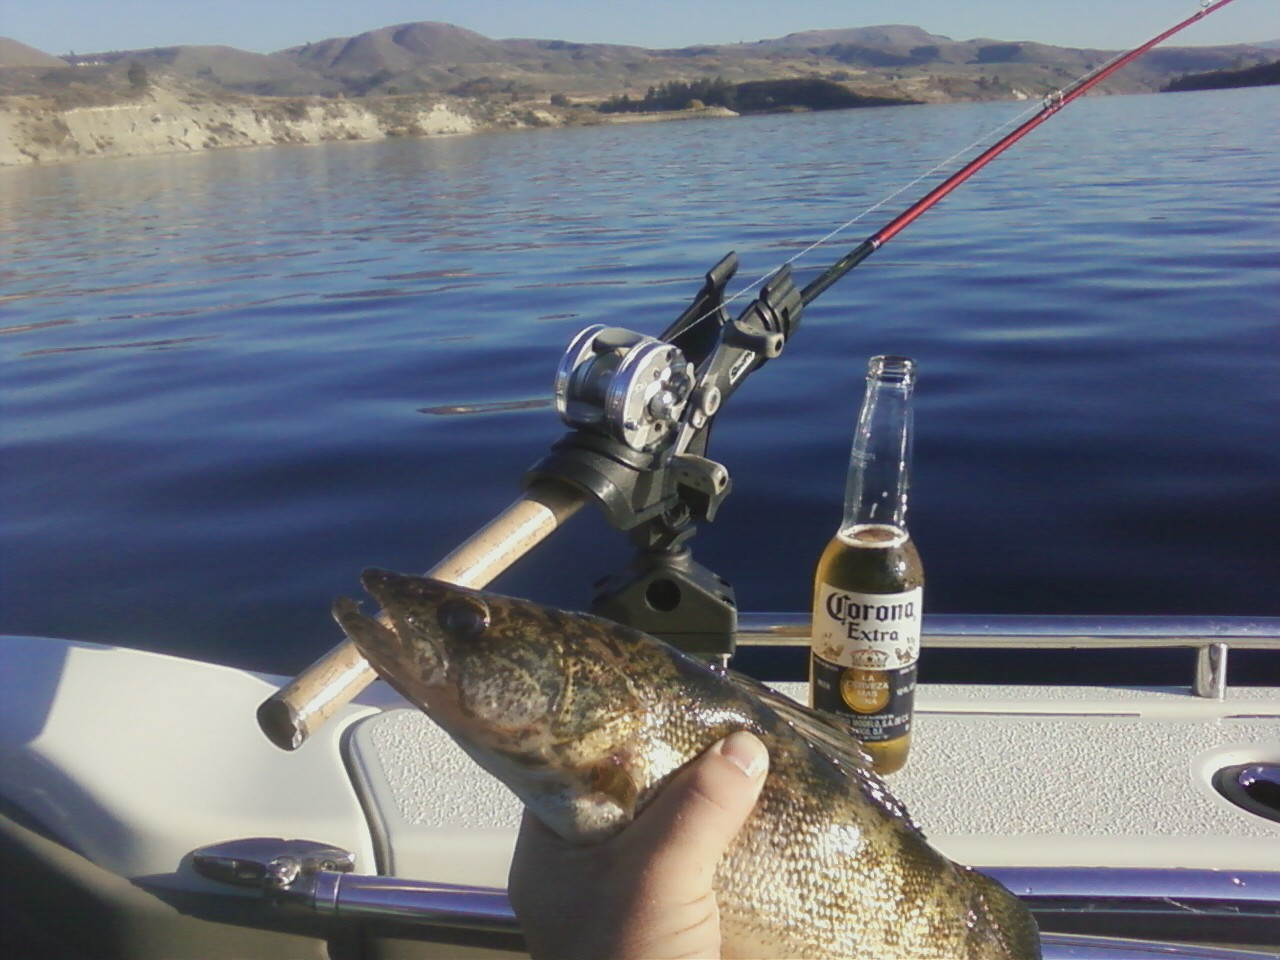 October sunshine on Rufus Woods, a fat walleye, and a cold beer. Life is good!!!